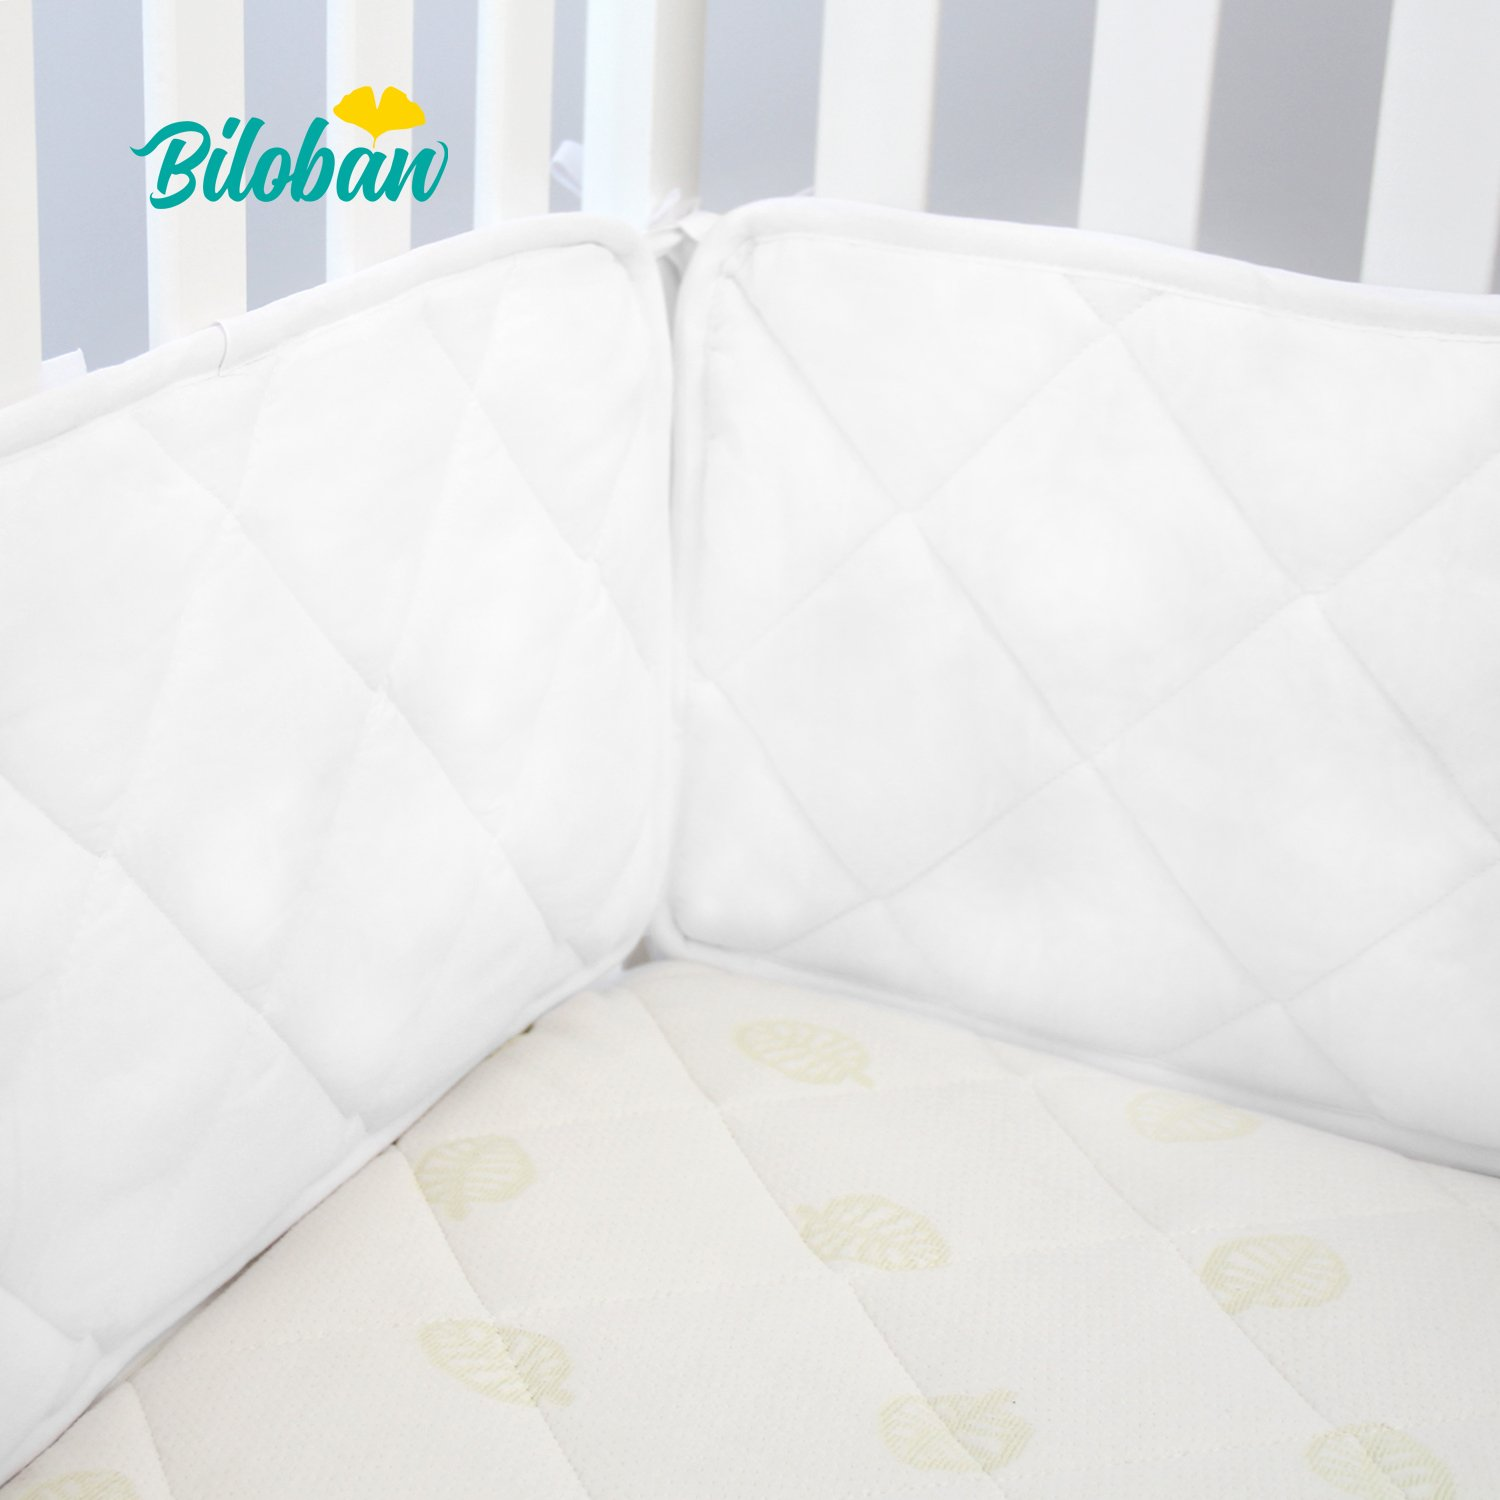 Biloban Safe Nursery Crib Bumper Pad, for Standard Size (52''28'') Crib Toddler Bed, Washable Crib Bedding Bumper Liners 4 Pieces/Set White